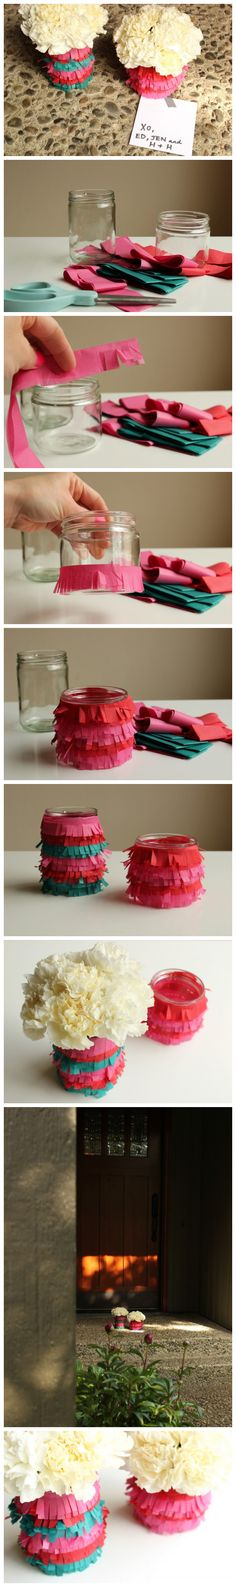 Tea lights maybe Diy Projects To Try, Crafts To Do, Craft Projects, Diy Party Decorations, Diy For Girls, Bottle Crafts, Diy Paper, Crafty, Flower Vases